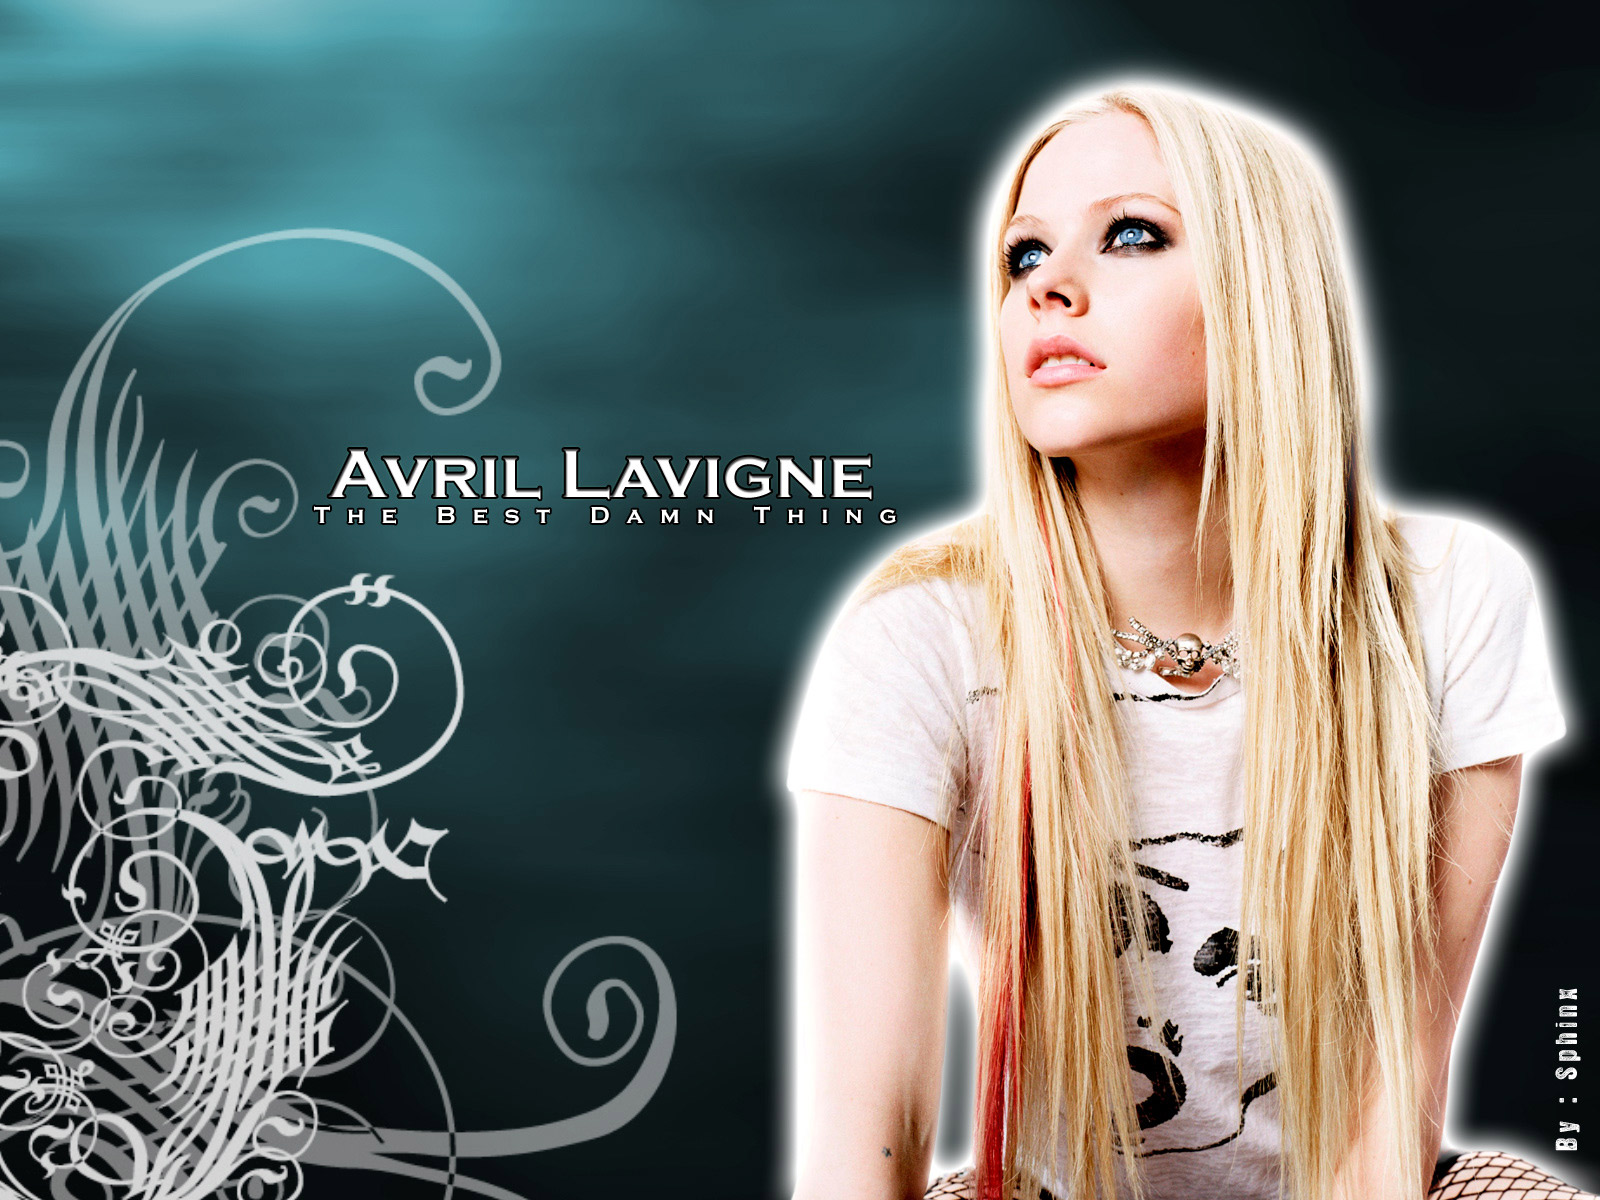 Girl Pakistani Wallpaper Hd Avril Lavigne Nice Pictures Hollywood Celebrity